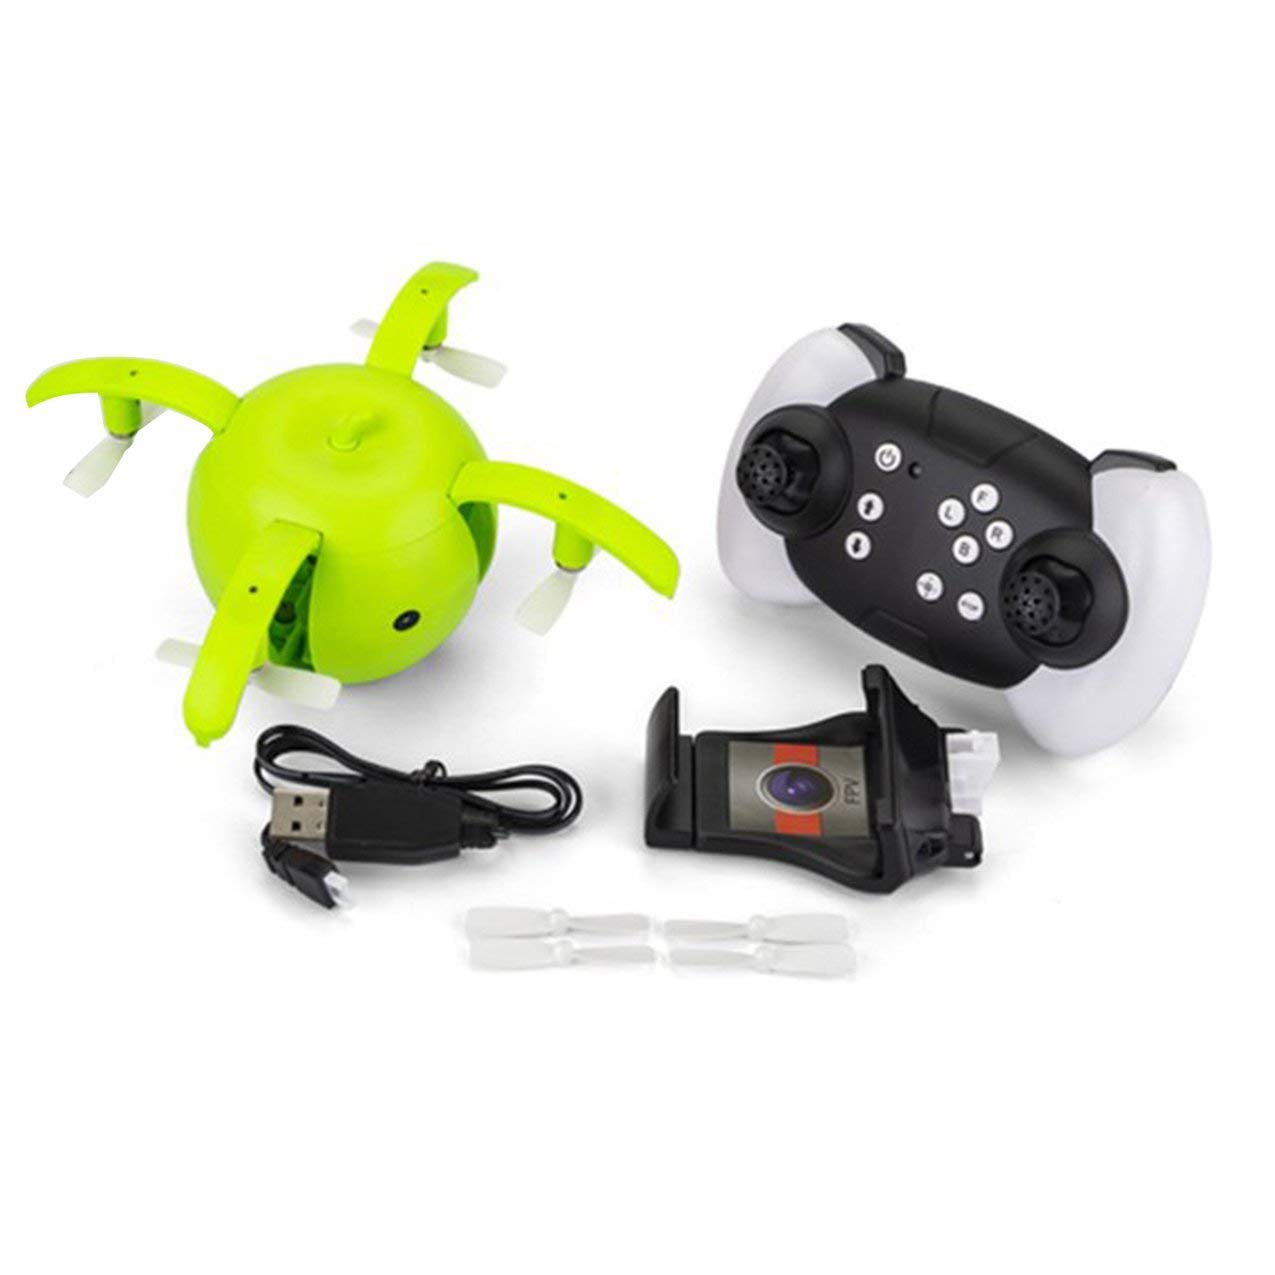 Redstrong X42-1 Gravity Induction WiFi Modo sin Cabeza Altitud Control RC Quadcopter